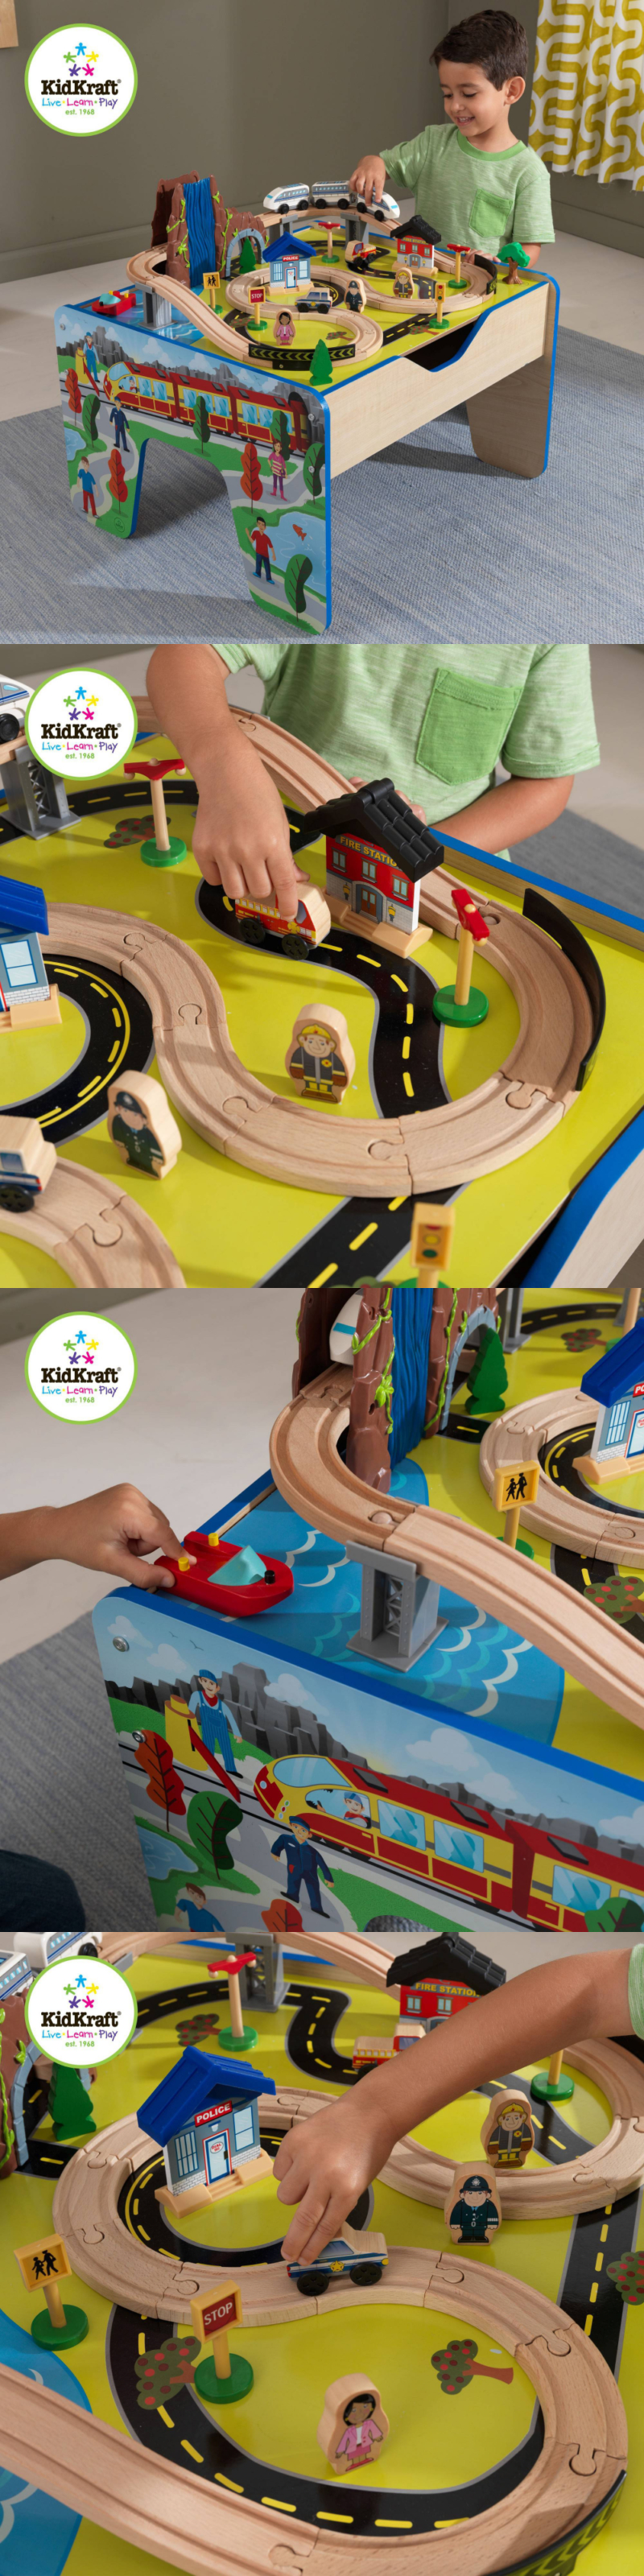 Toys images for boys  Wooden and Handcrafted Toys  Kidkraft Train Table Set Wooden